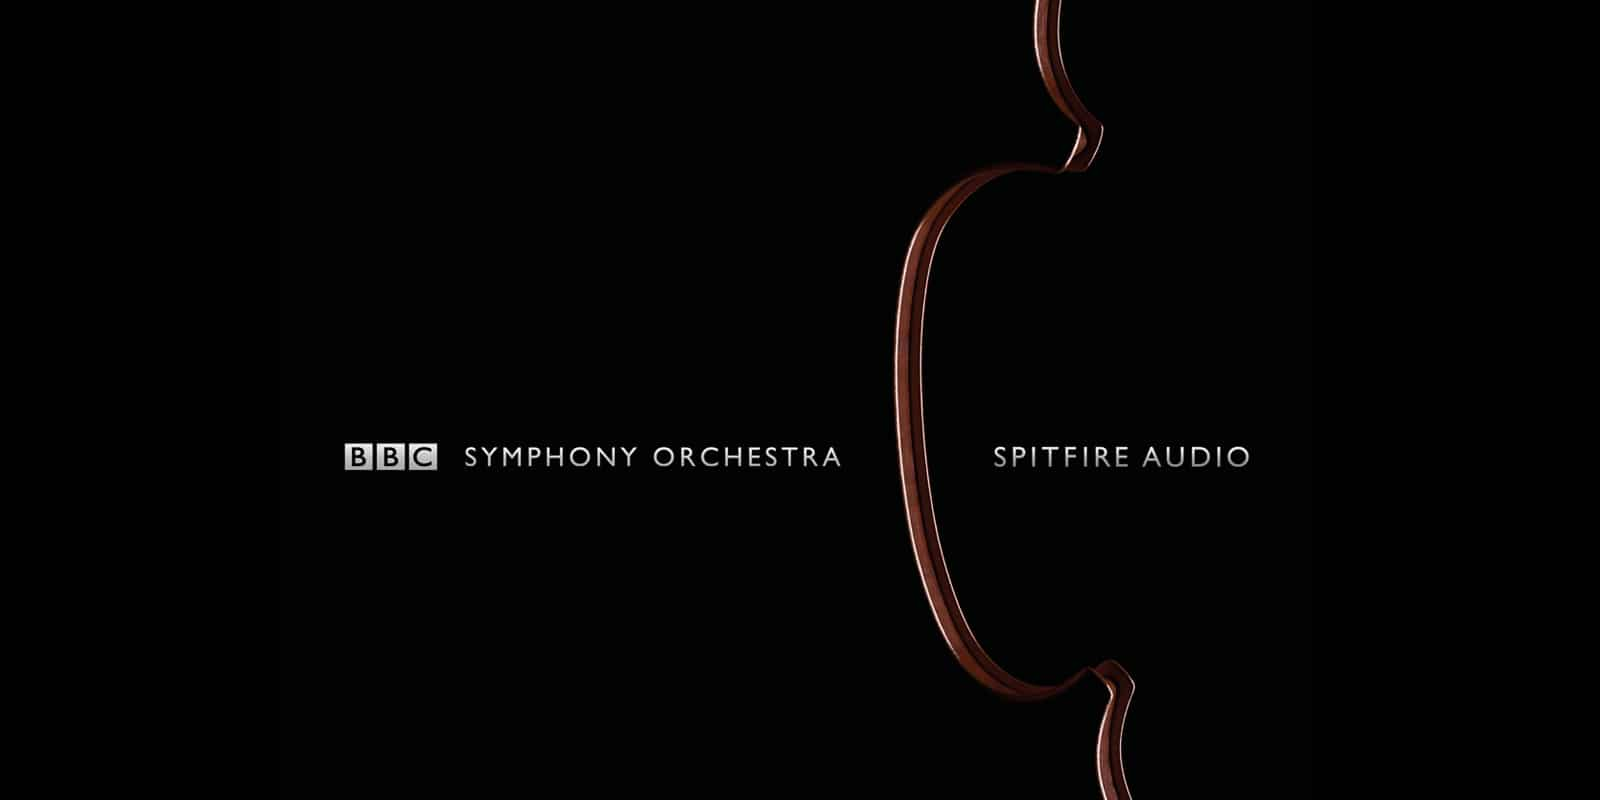 Spitfire Audio – collaborative calling with BBC SYMPHONY